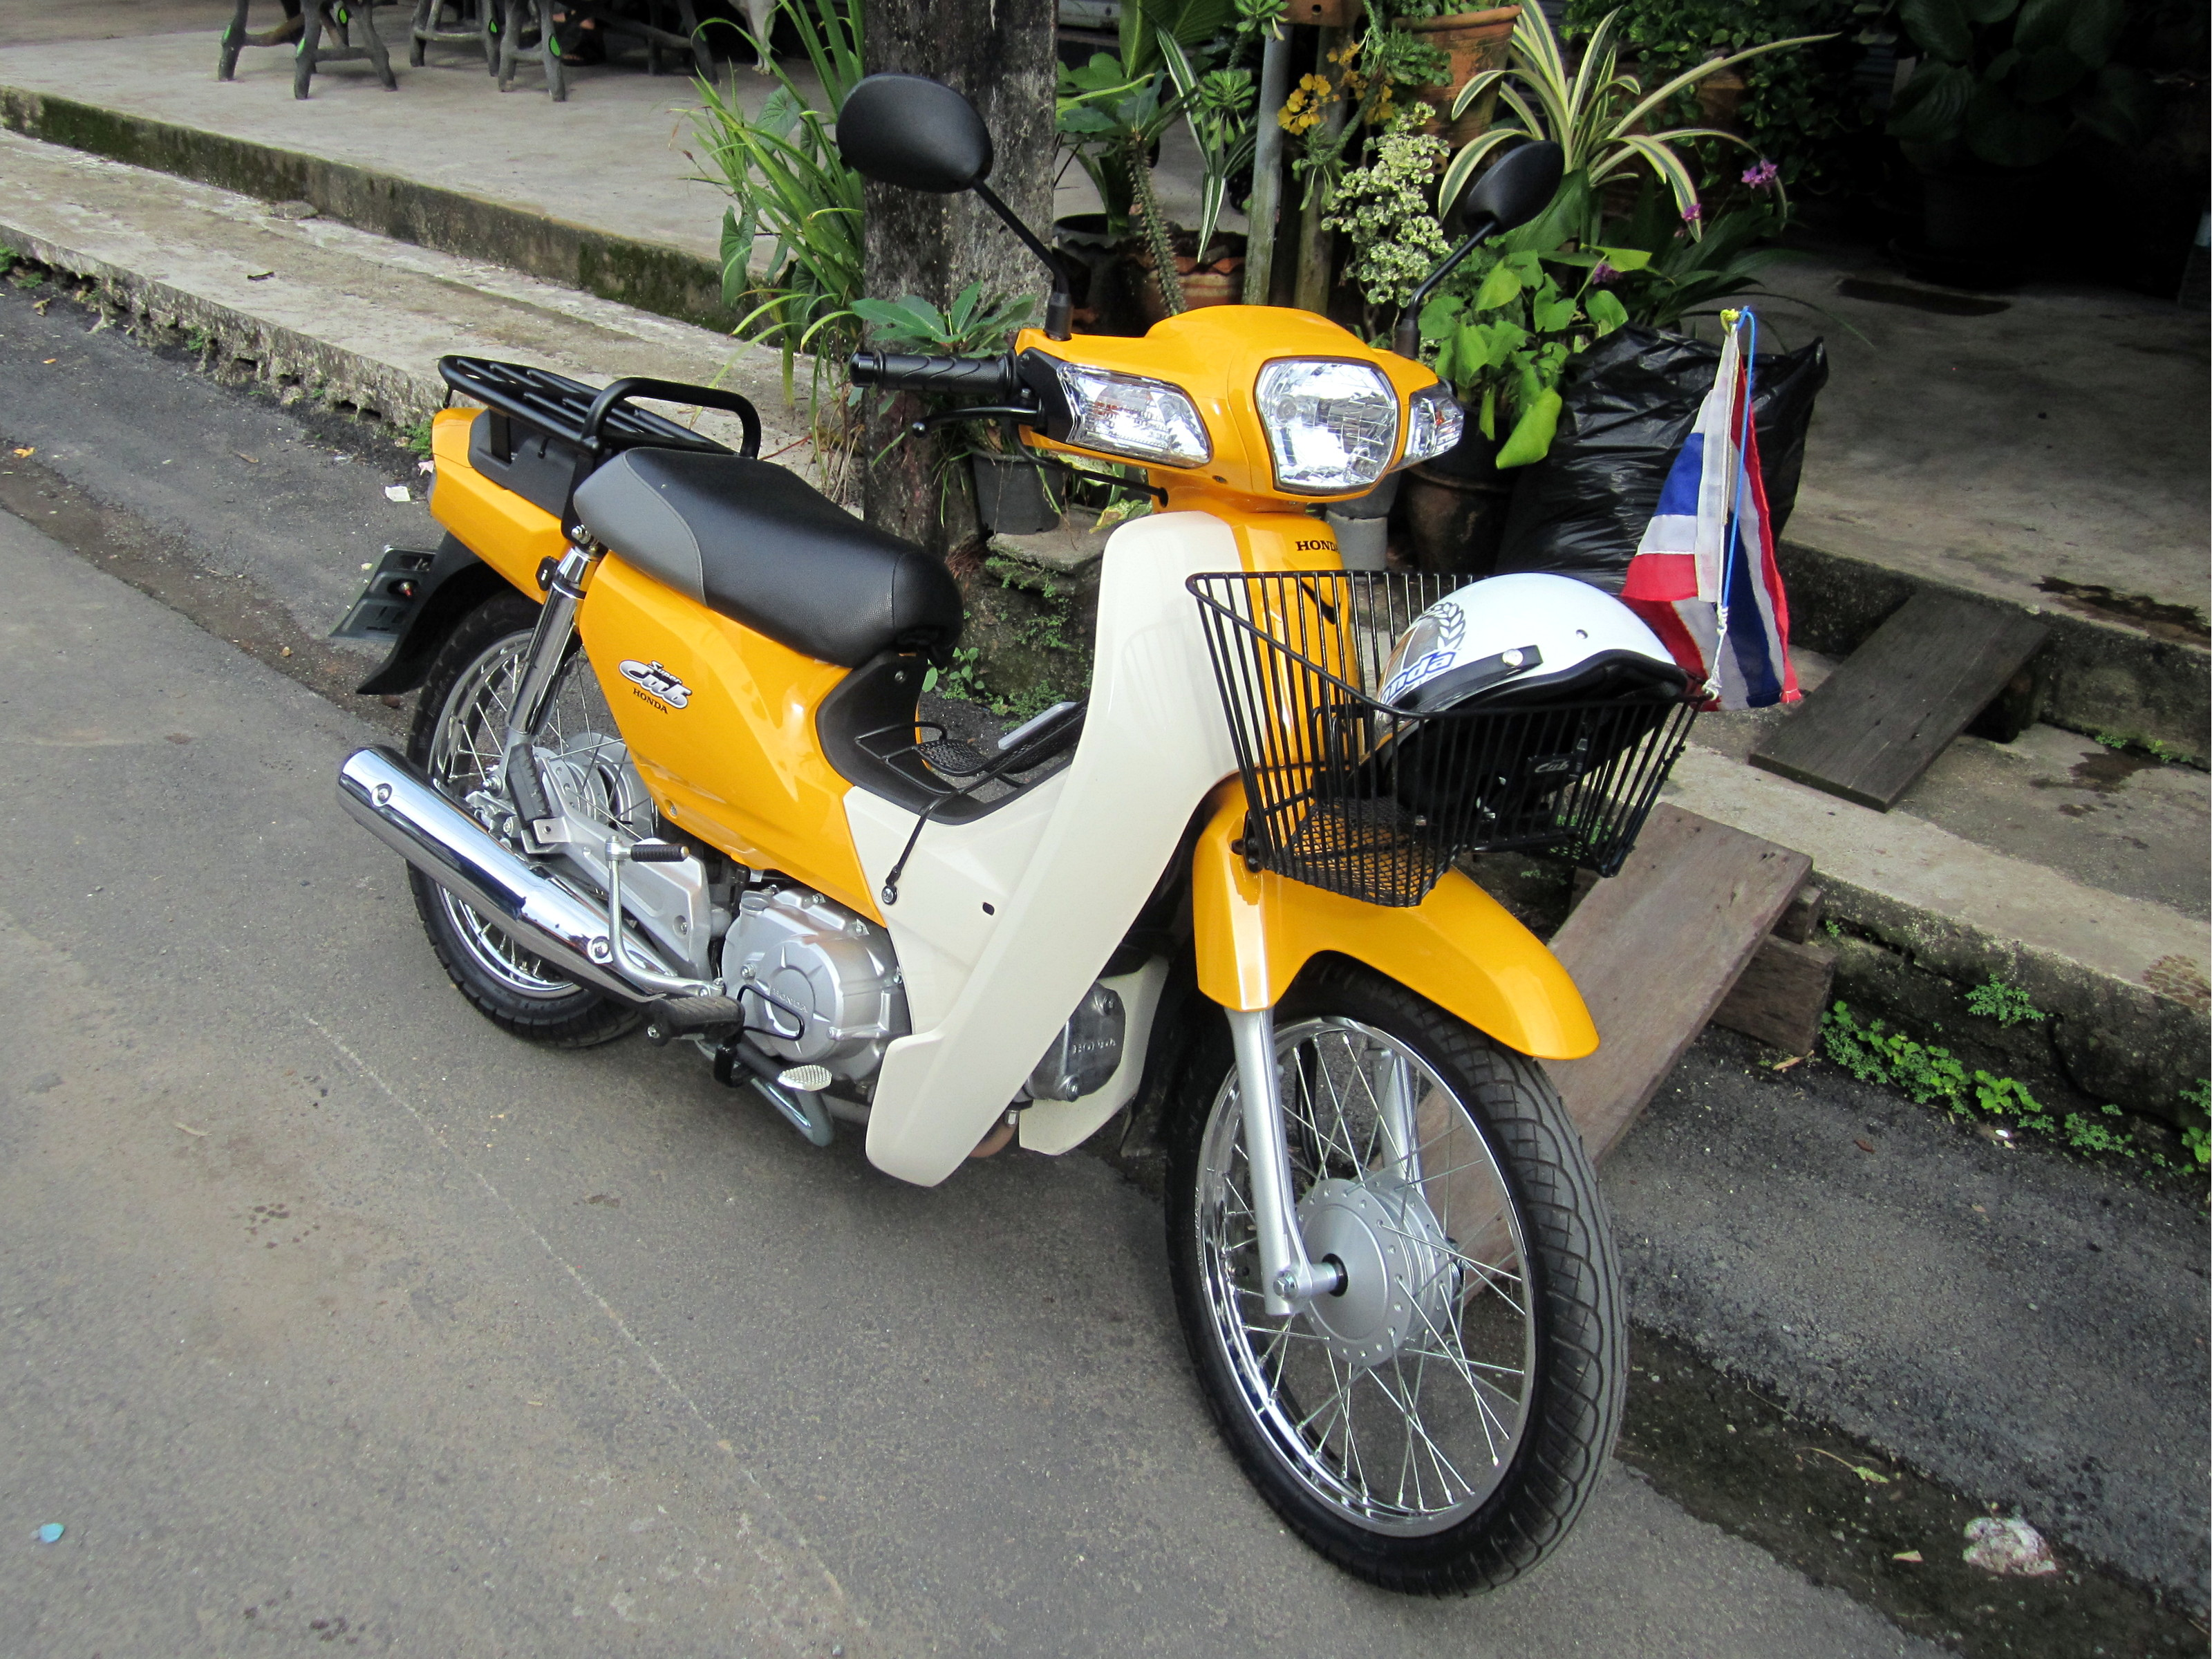 File Honda Dream 110i Super Cub Nd110m With Accessories Jpg Wikimedia Commons